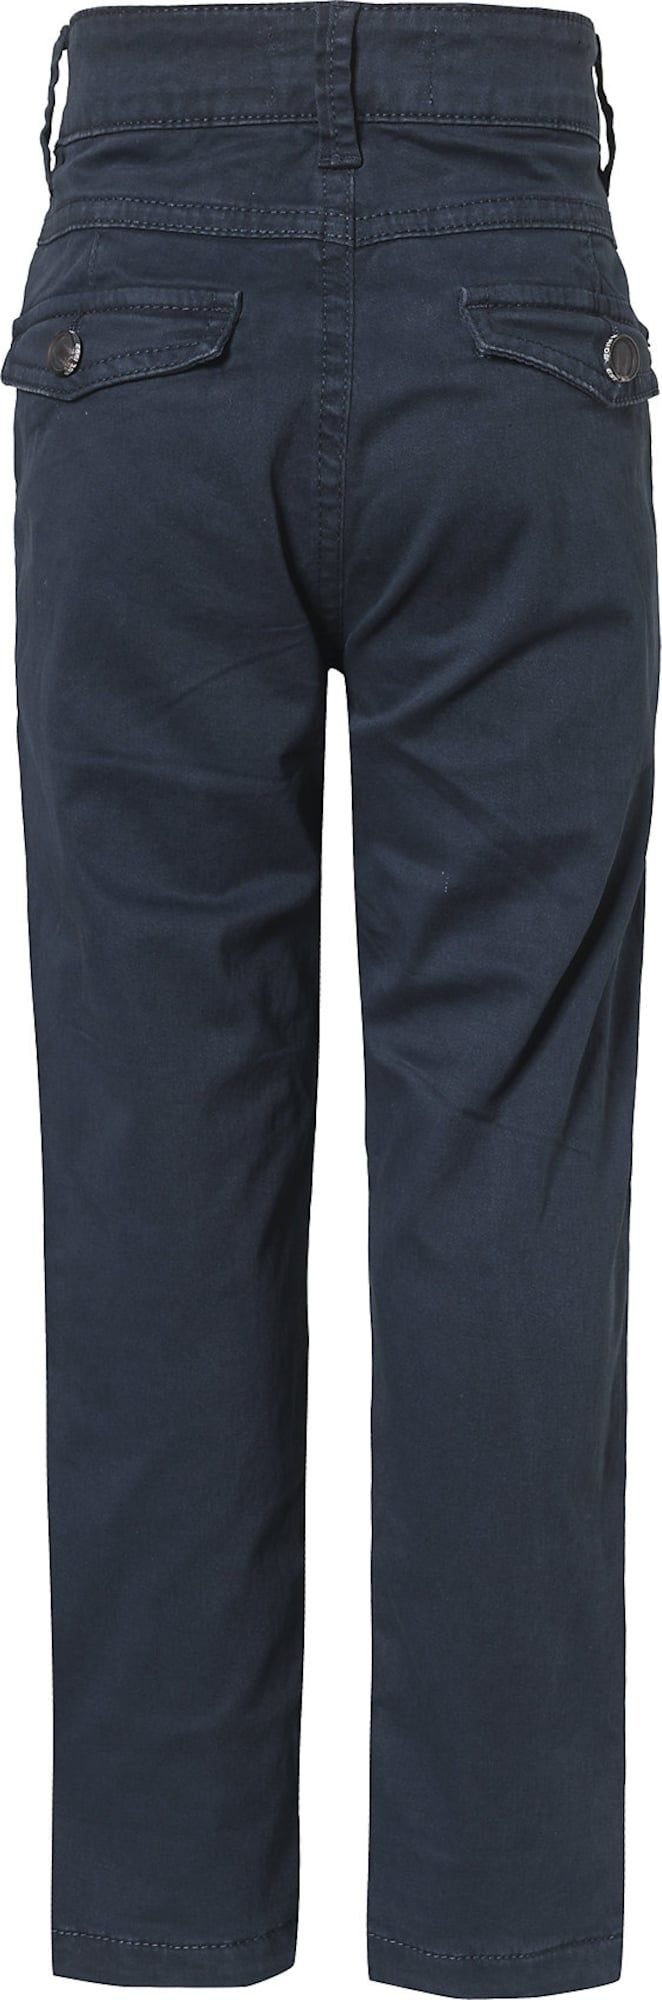 REVIEW FOR KIDS Chinos boys, blue, size 110